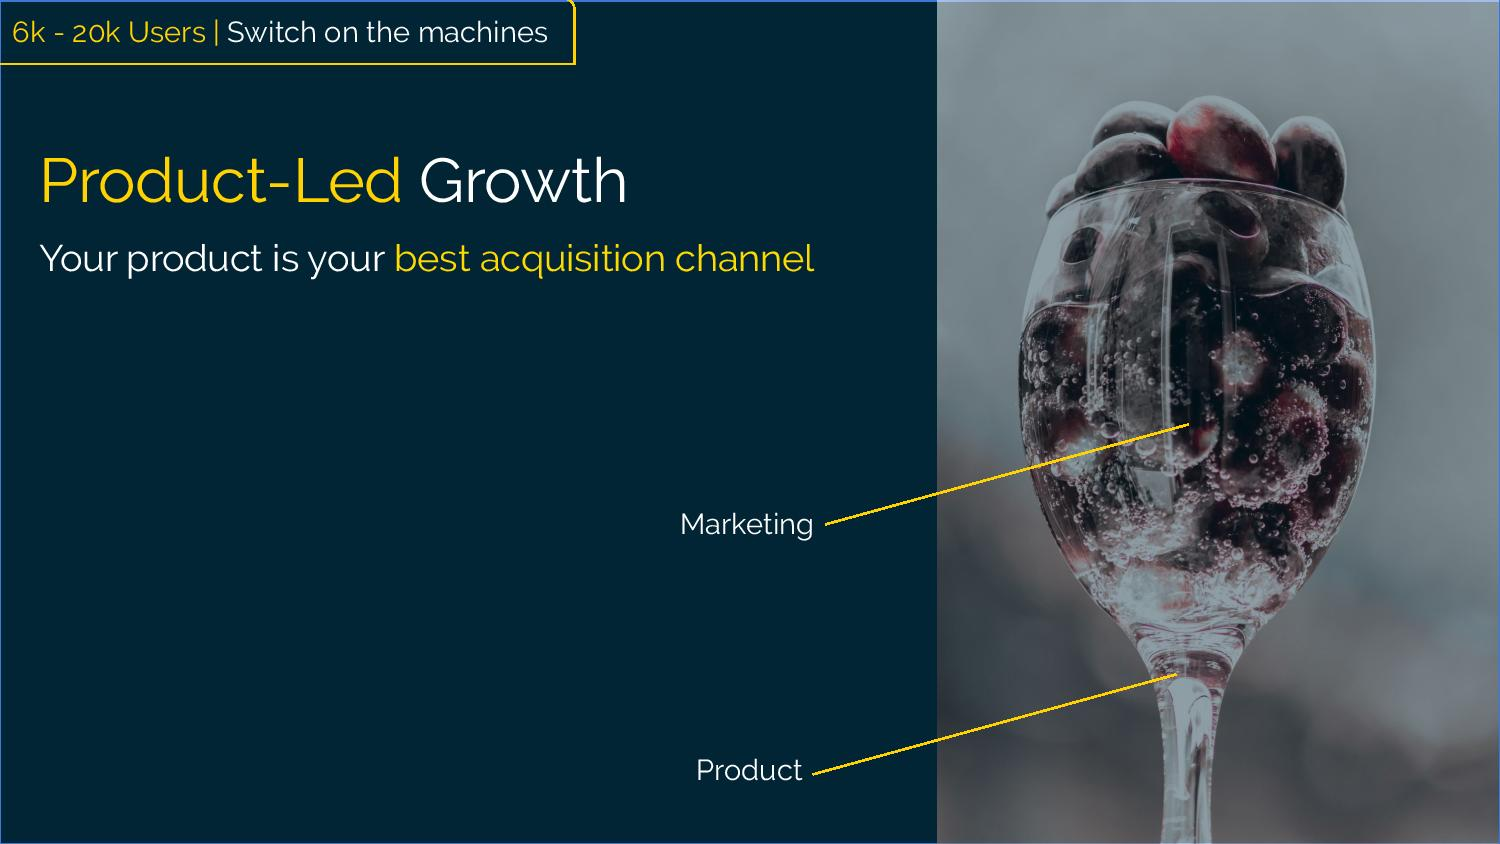 "Product-Led Growth [Image of a wine glass filled with liquid and grapes. The supporting stem of the glass represents product and the container portion represents marketing= Marketing funnels to product] ""Your product is your best acquisition channel"""